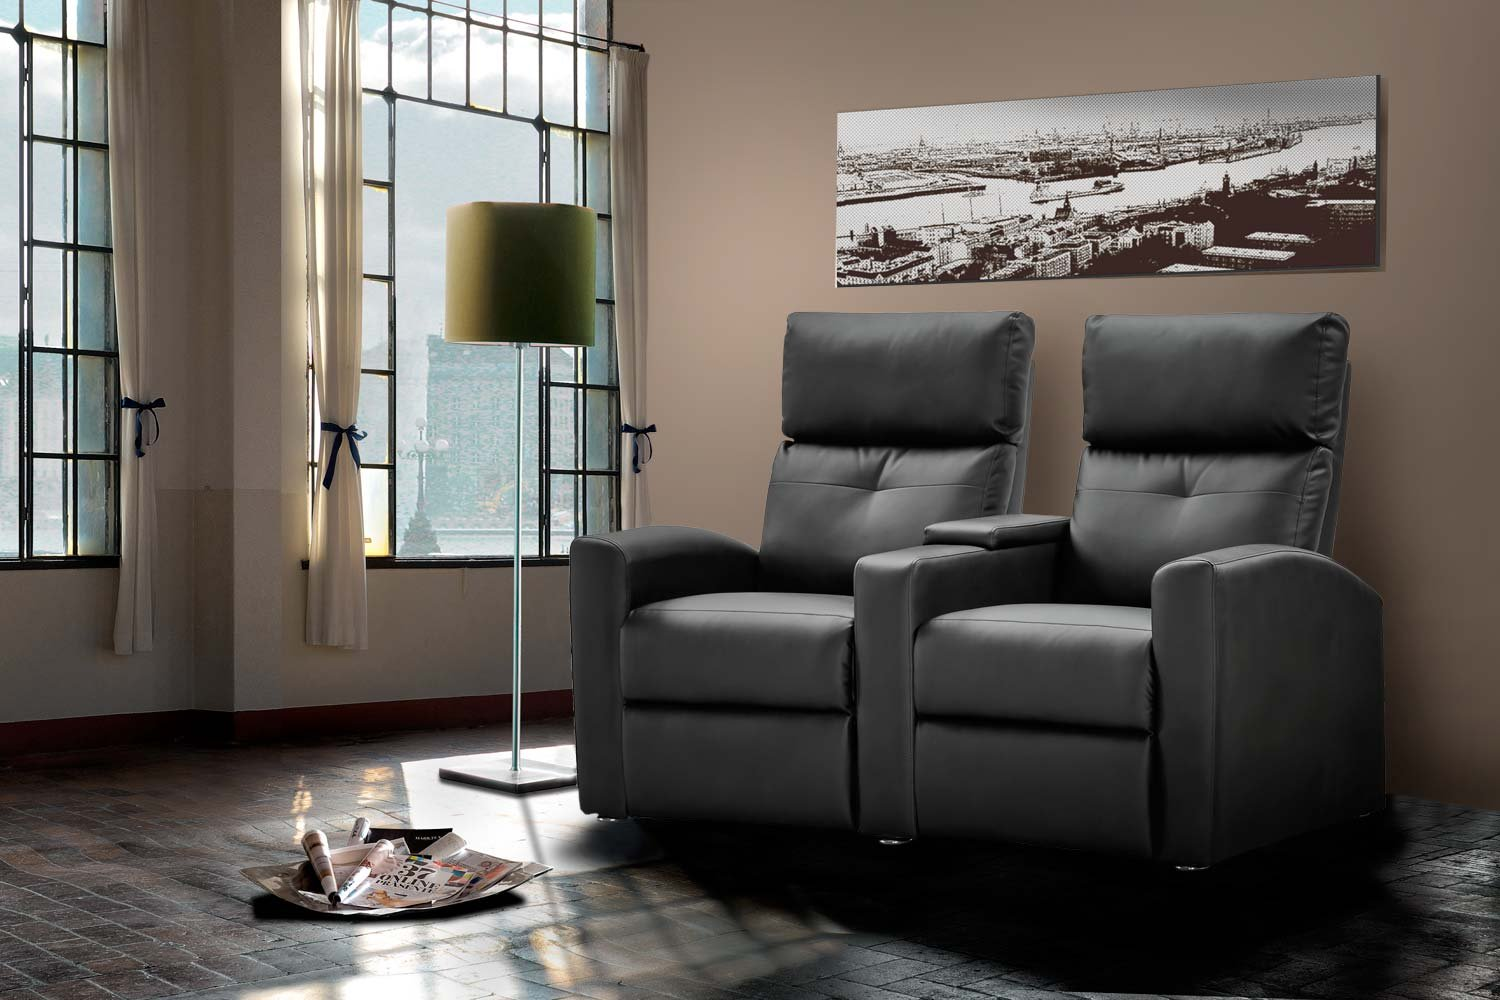 2 sitzer kinosessel kunstleder schwarz cinema relax sofa heimkino sessel tv sofa. Black Bedroom Furniture Sets. Home Design Ideas